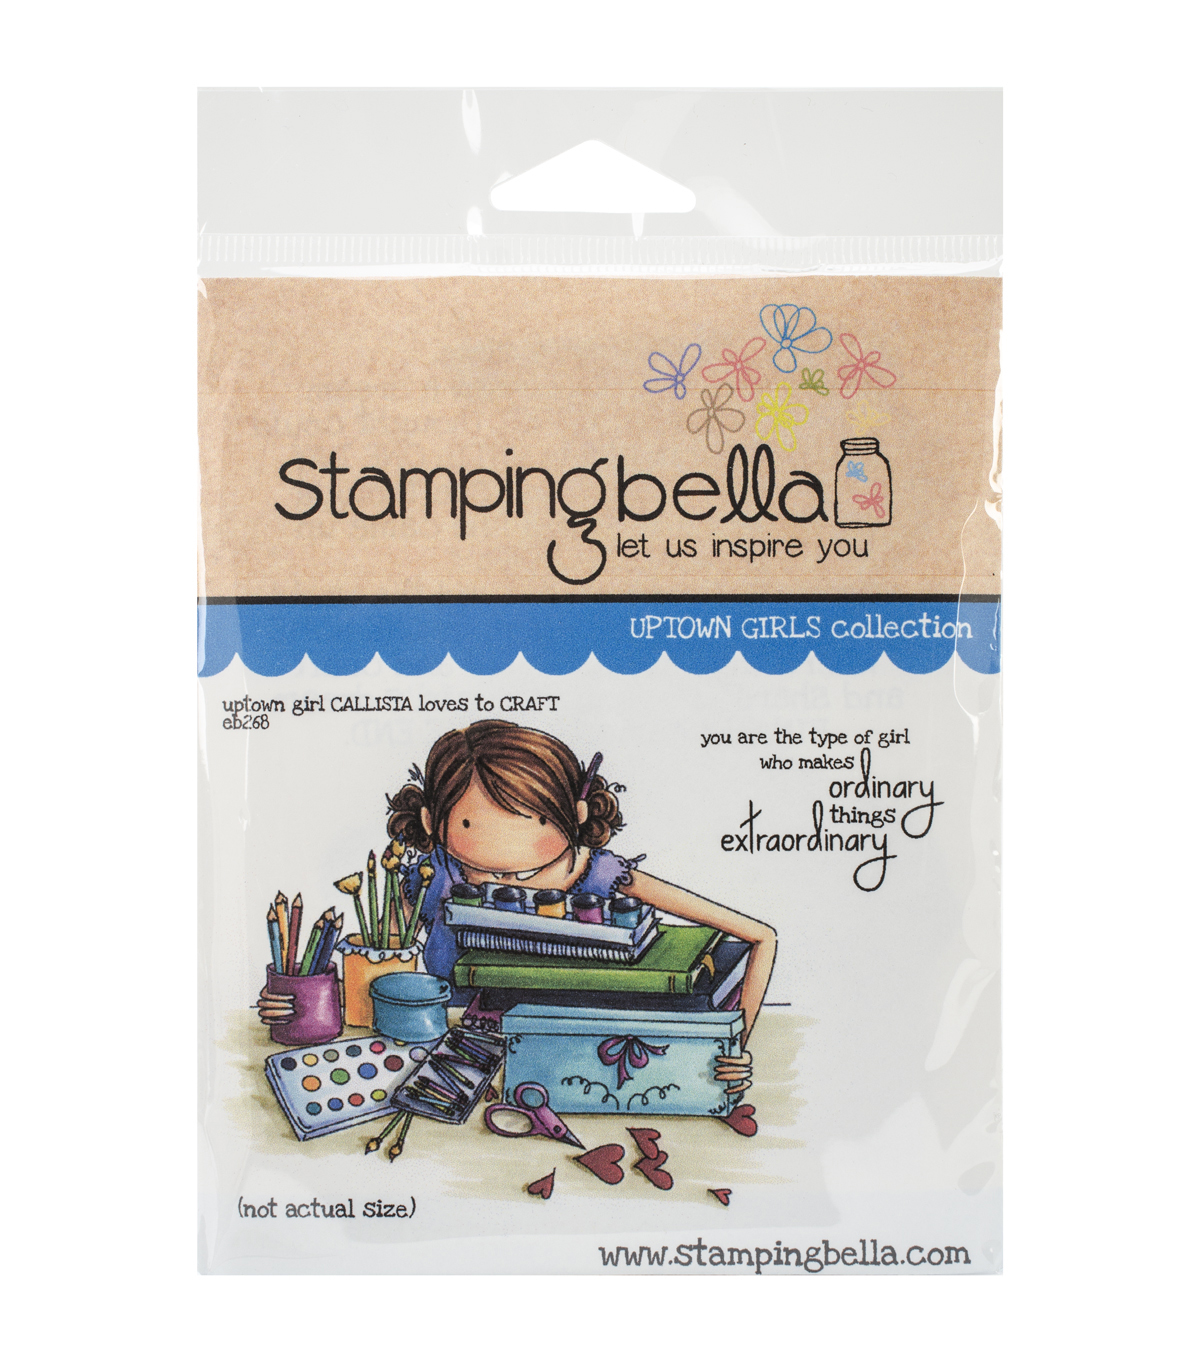 Stamping Bella Uptown Girl Callista Loves To Craft Cling Rubber Stamp